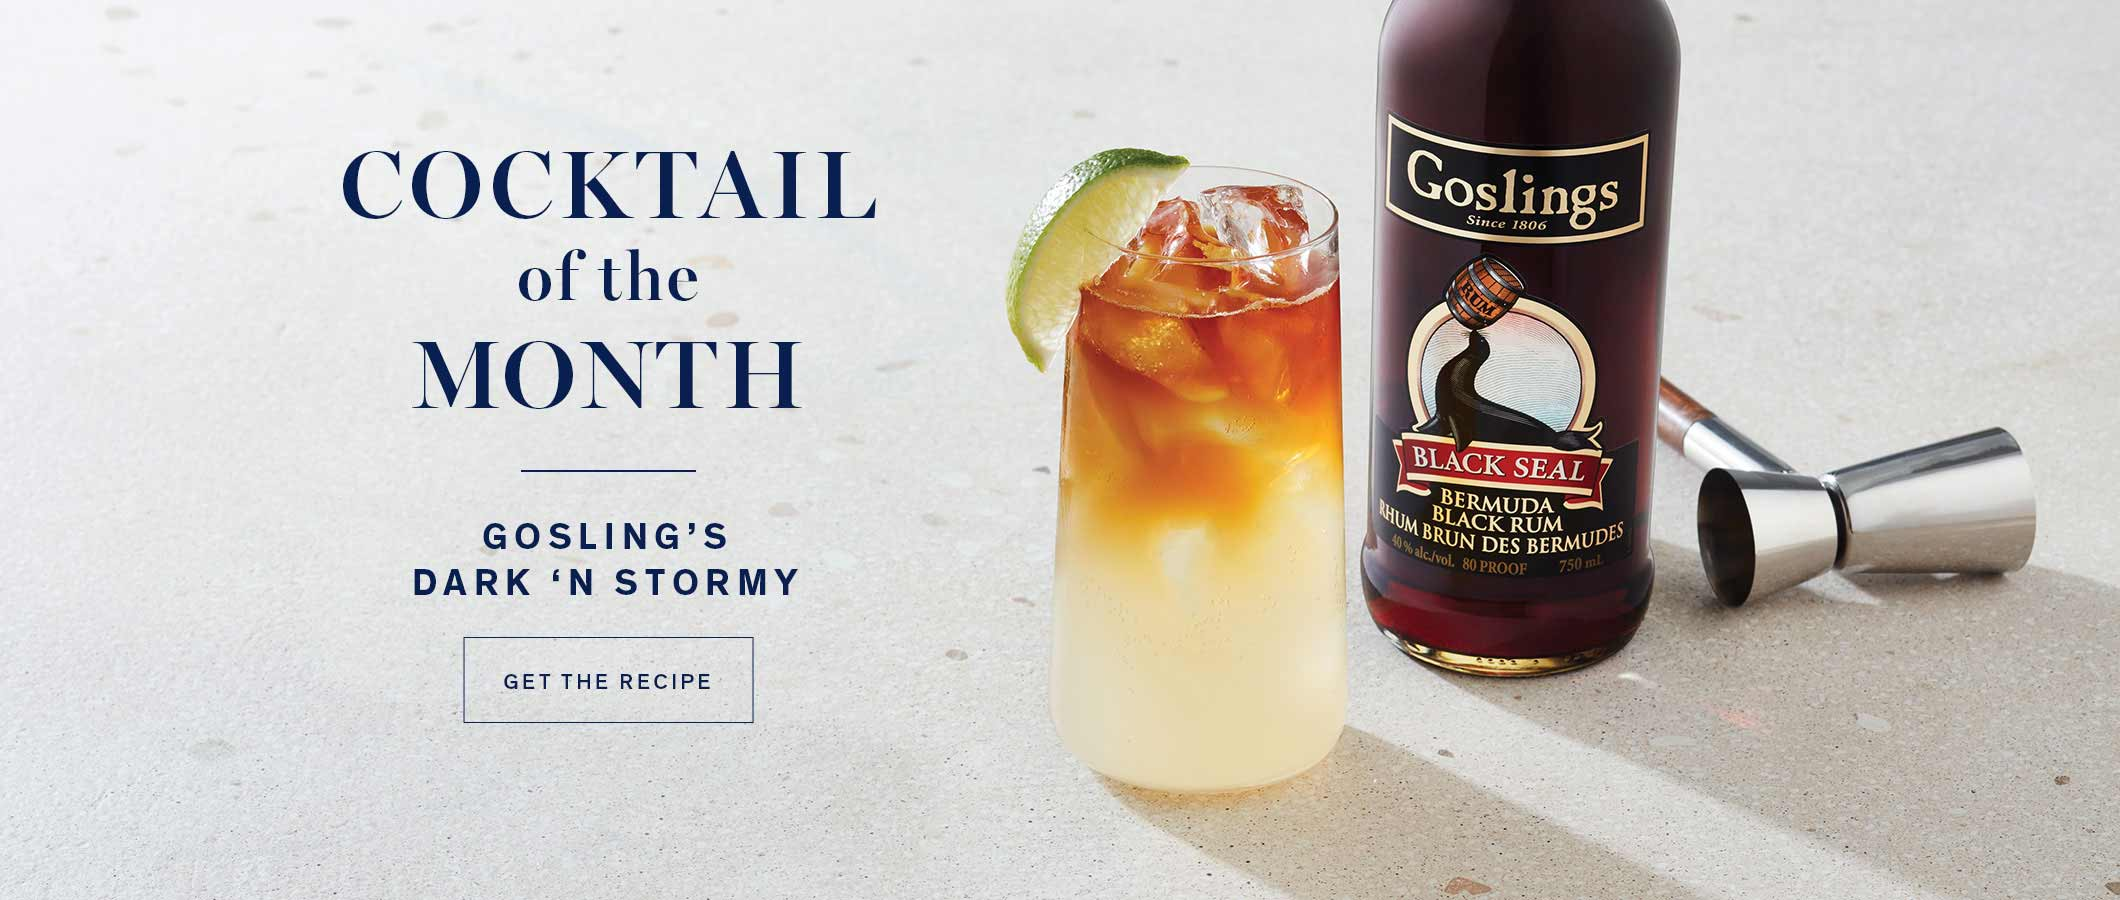 Cocktail of the Month  Gosling's Dark 'n Stormy  GET THE RECIPE